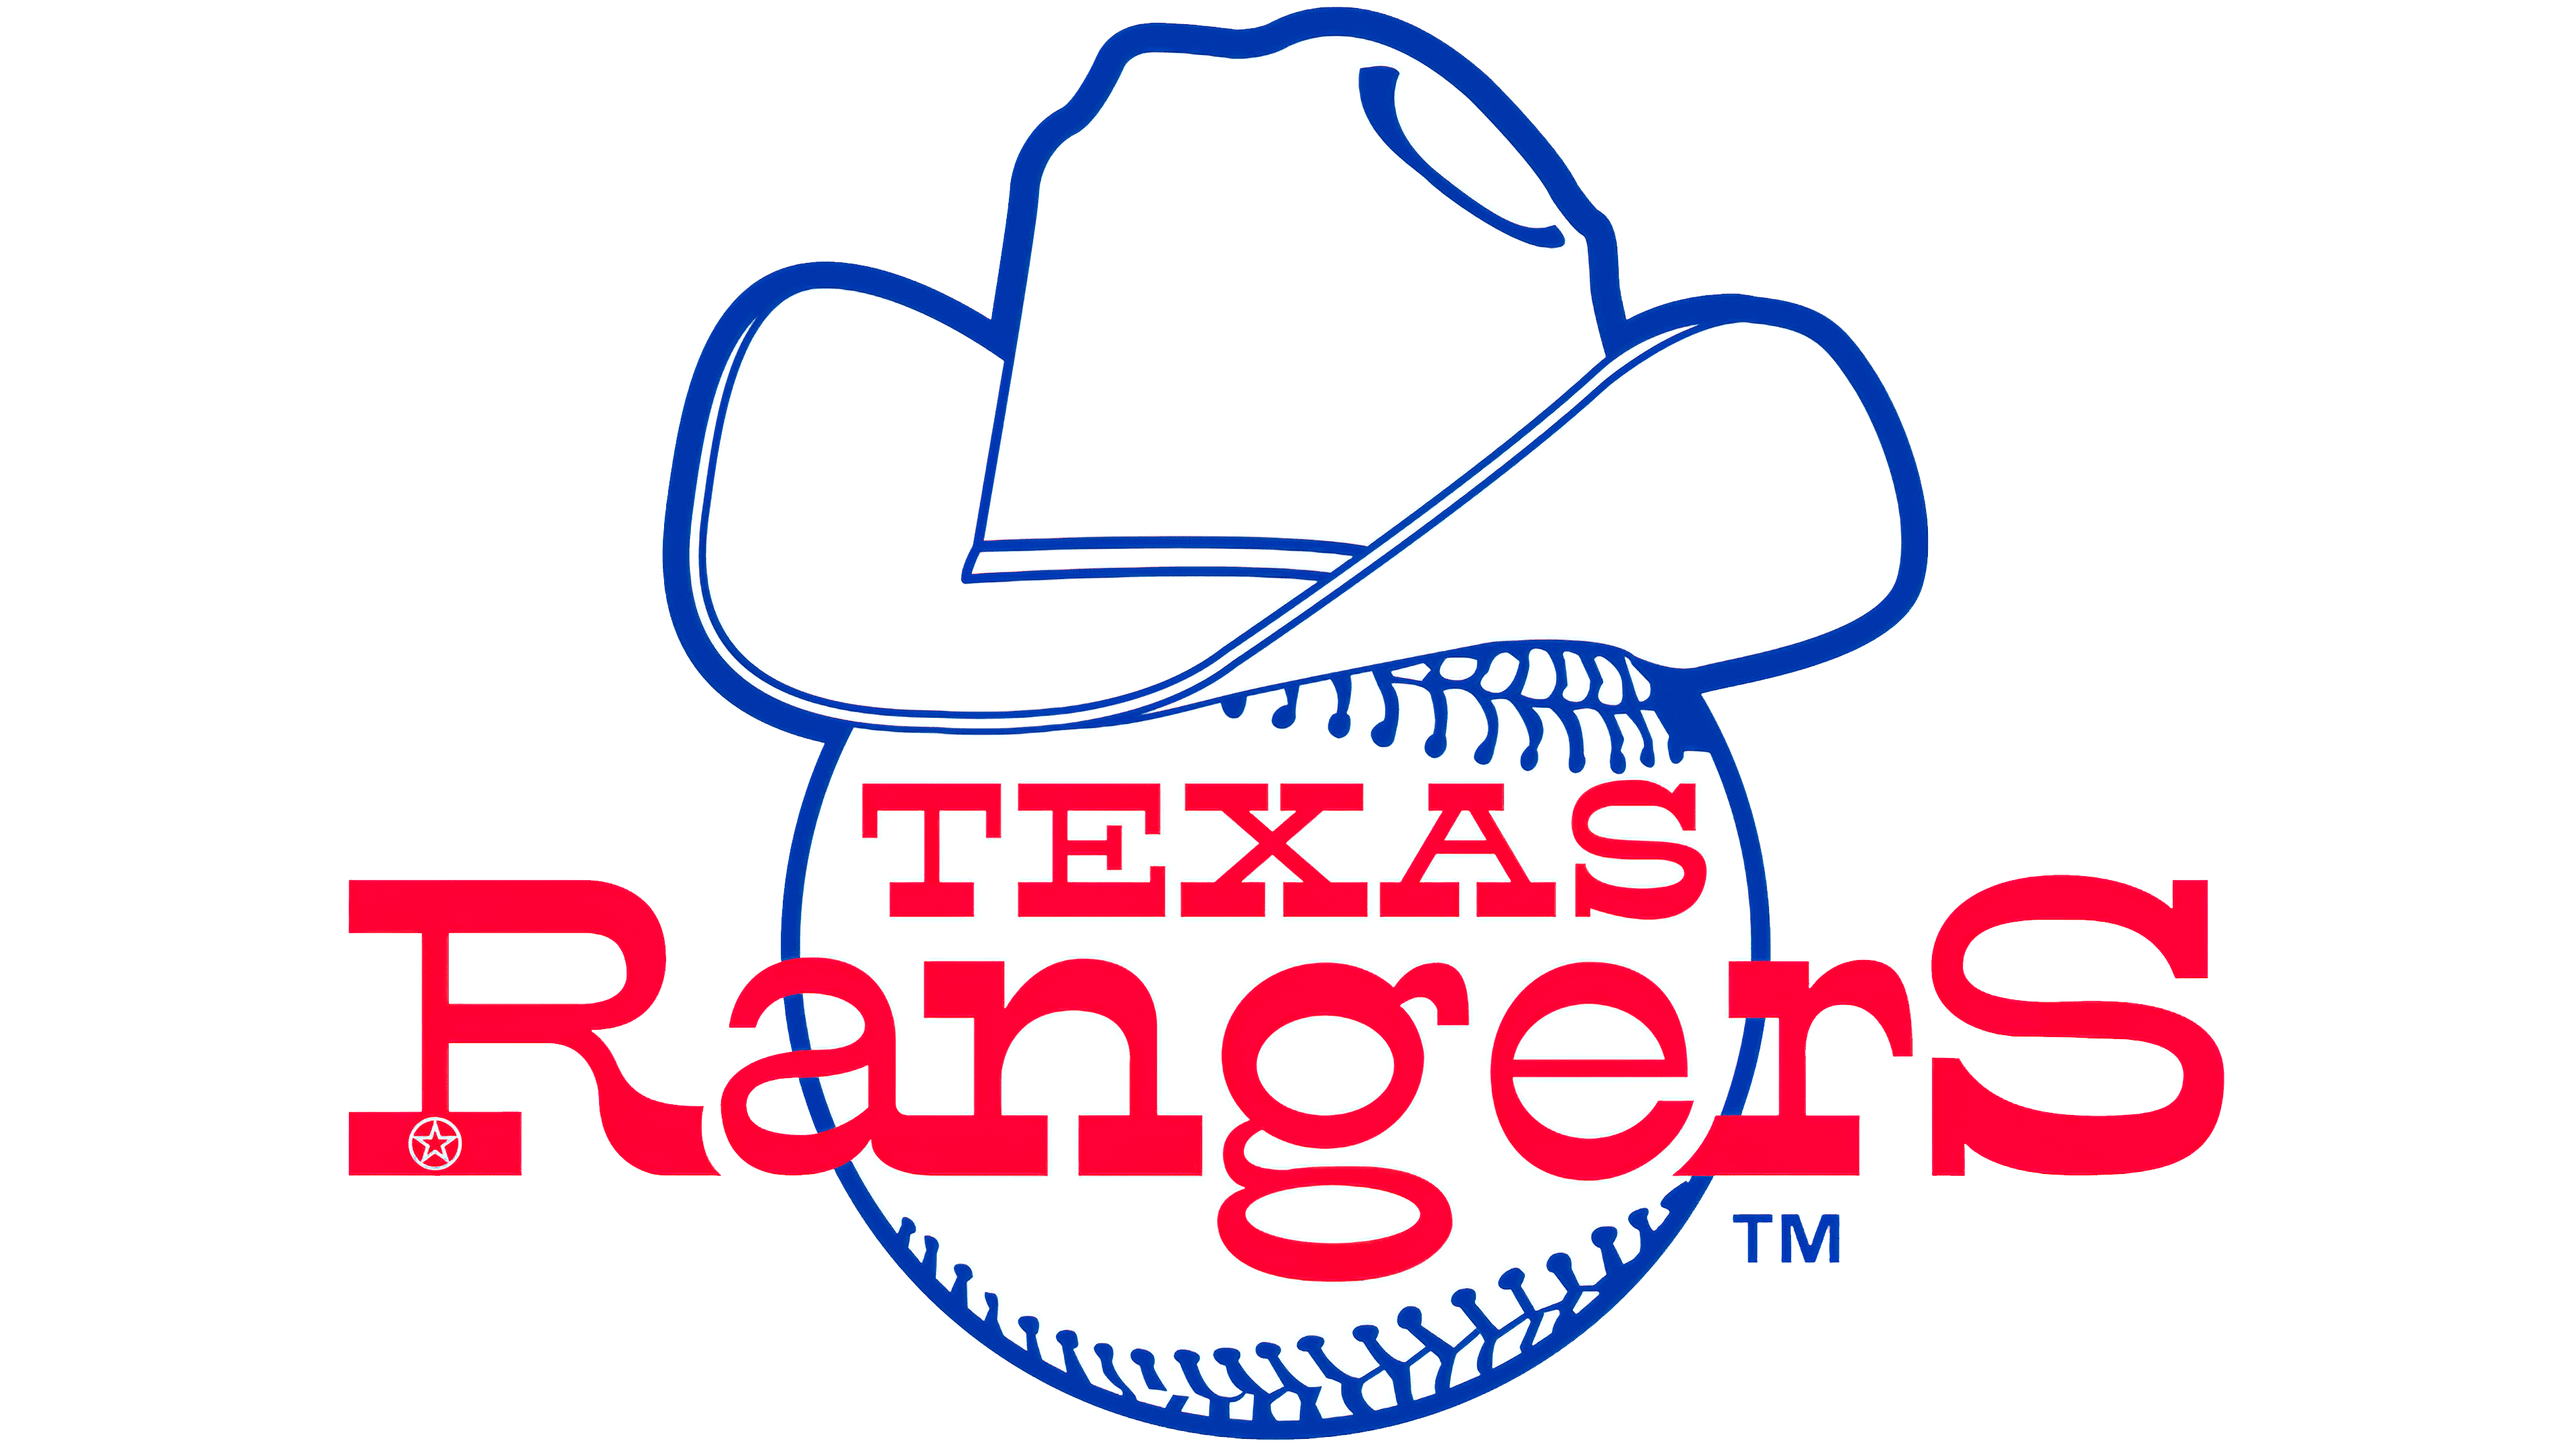 Texas Rangers Logo History The Most Famous Brands And Company Logos In The World